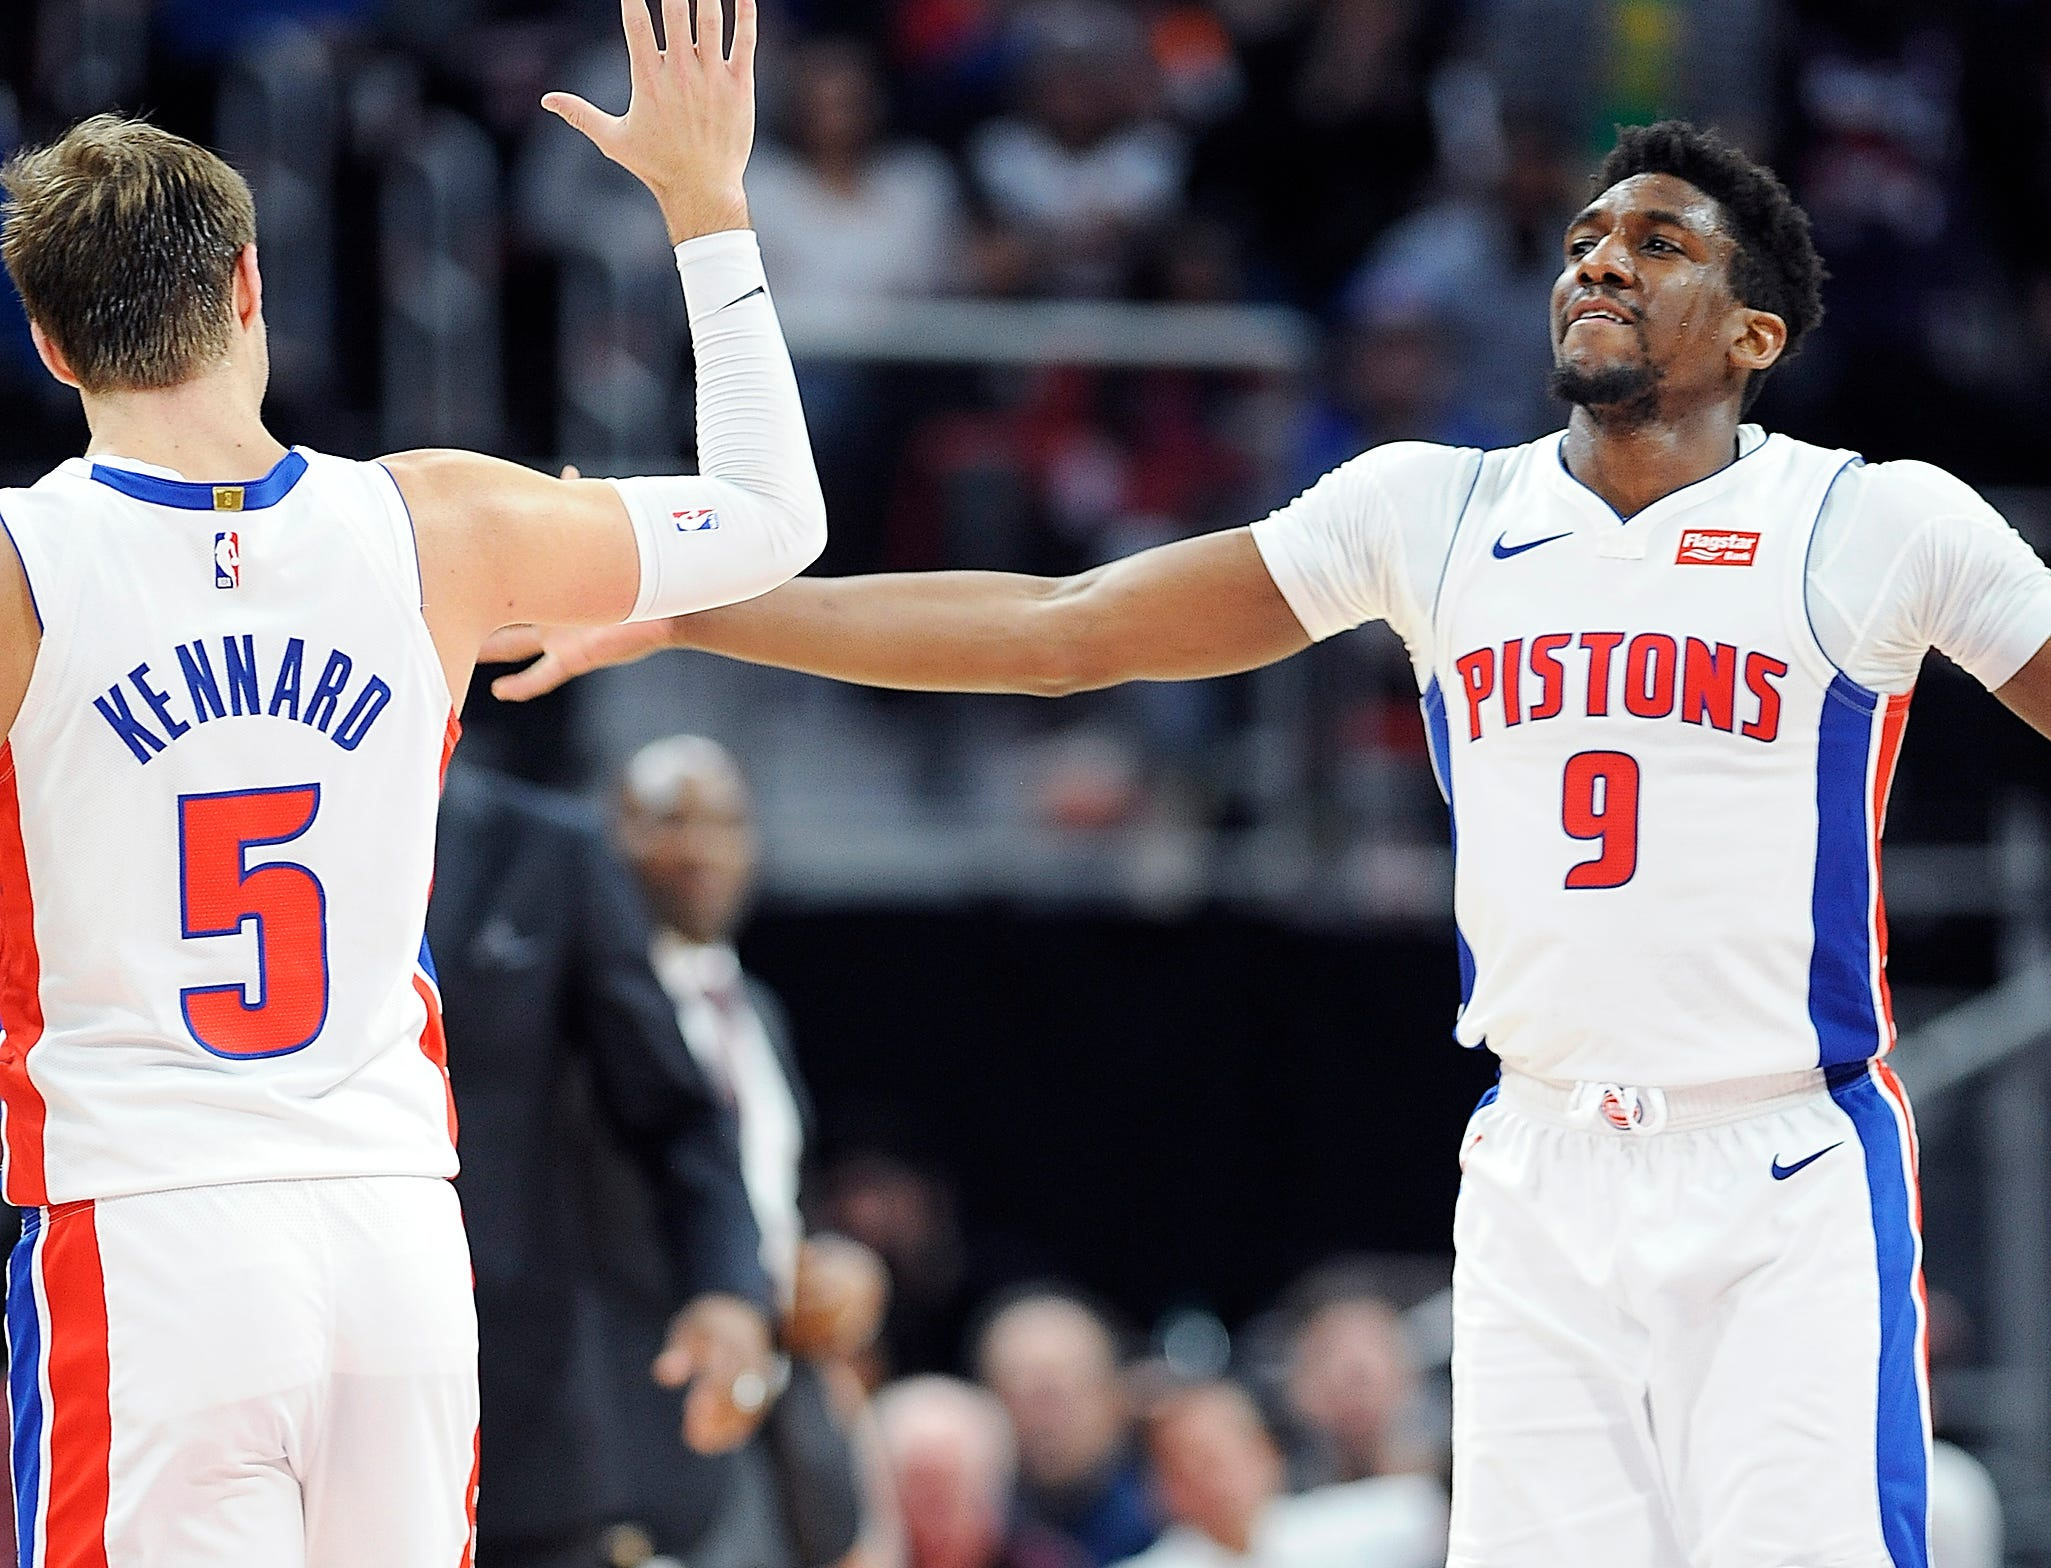 Pistons' Langston Galloway, (r), and Luke Kennard celebrate in the second quarter.